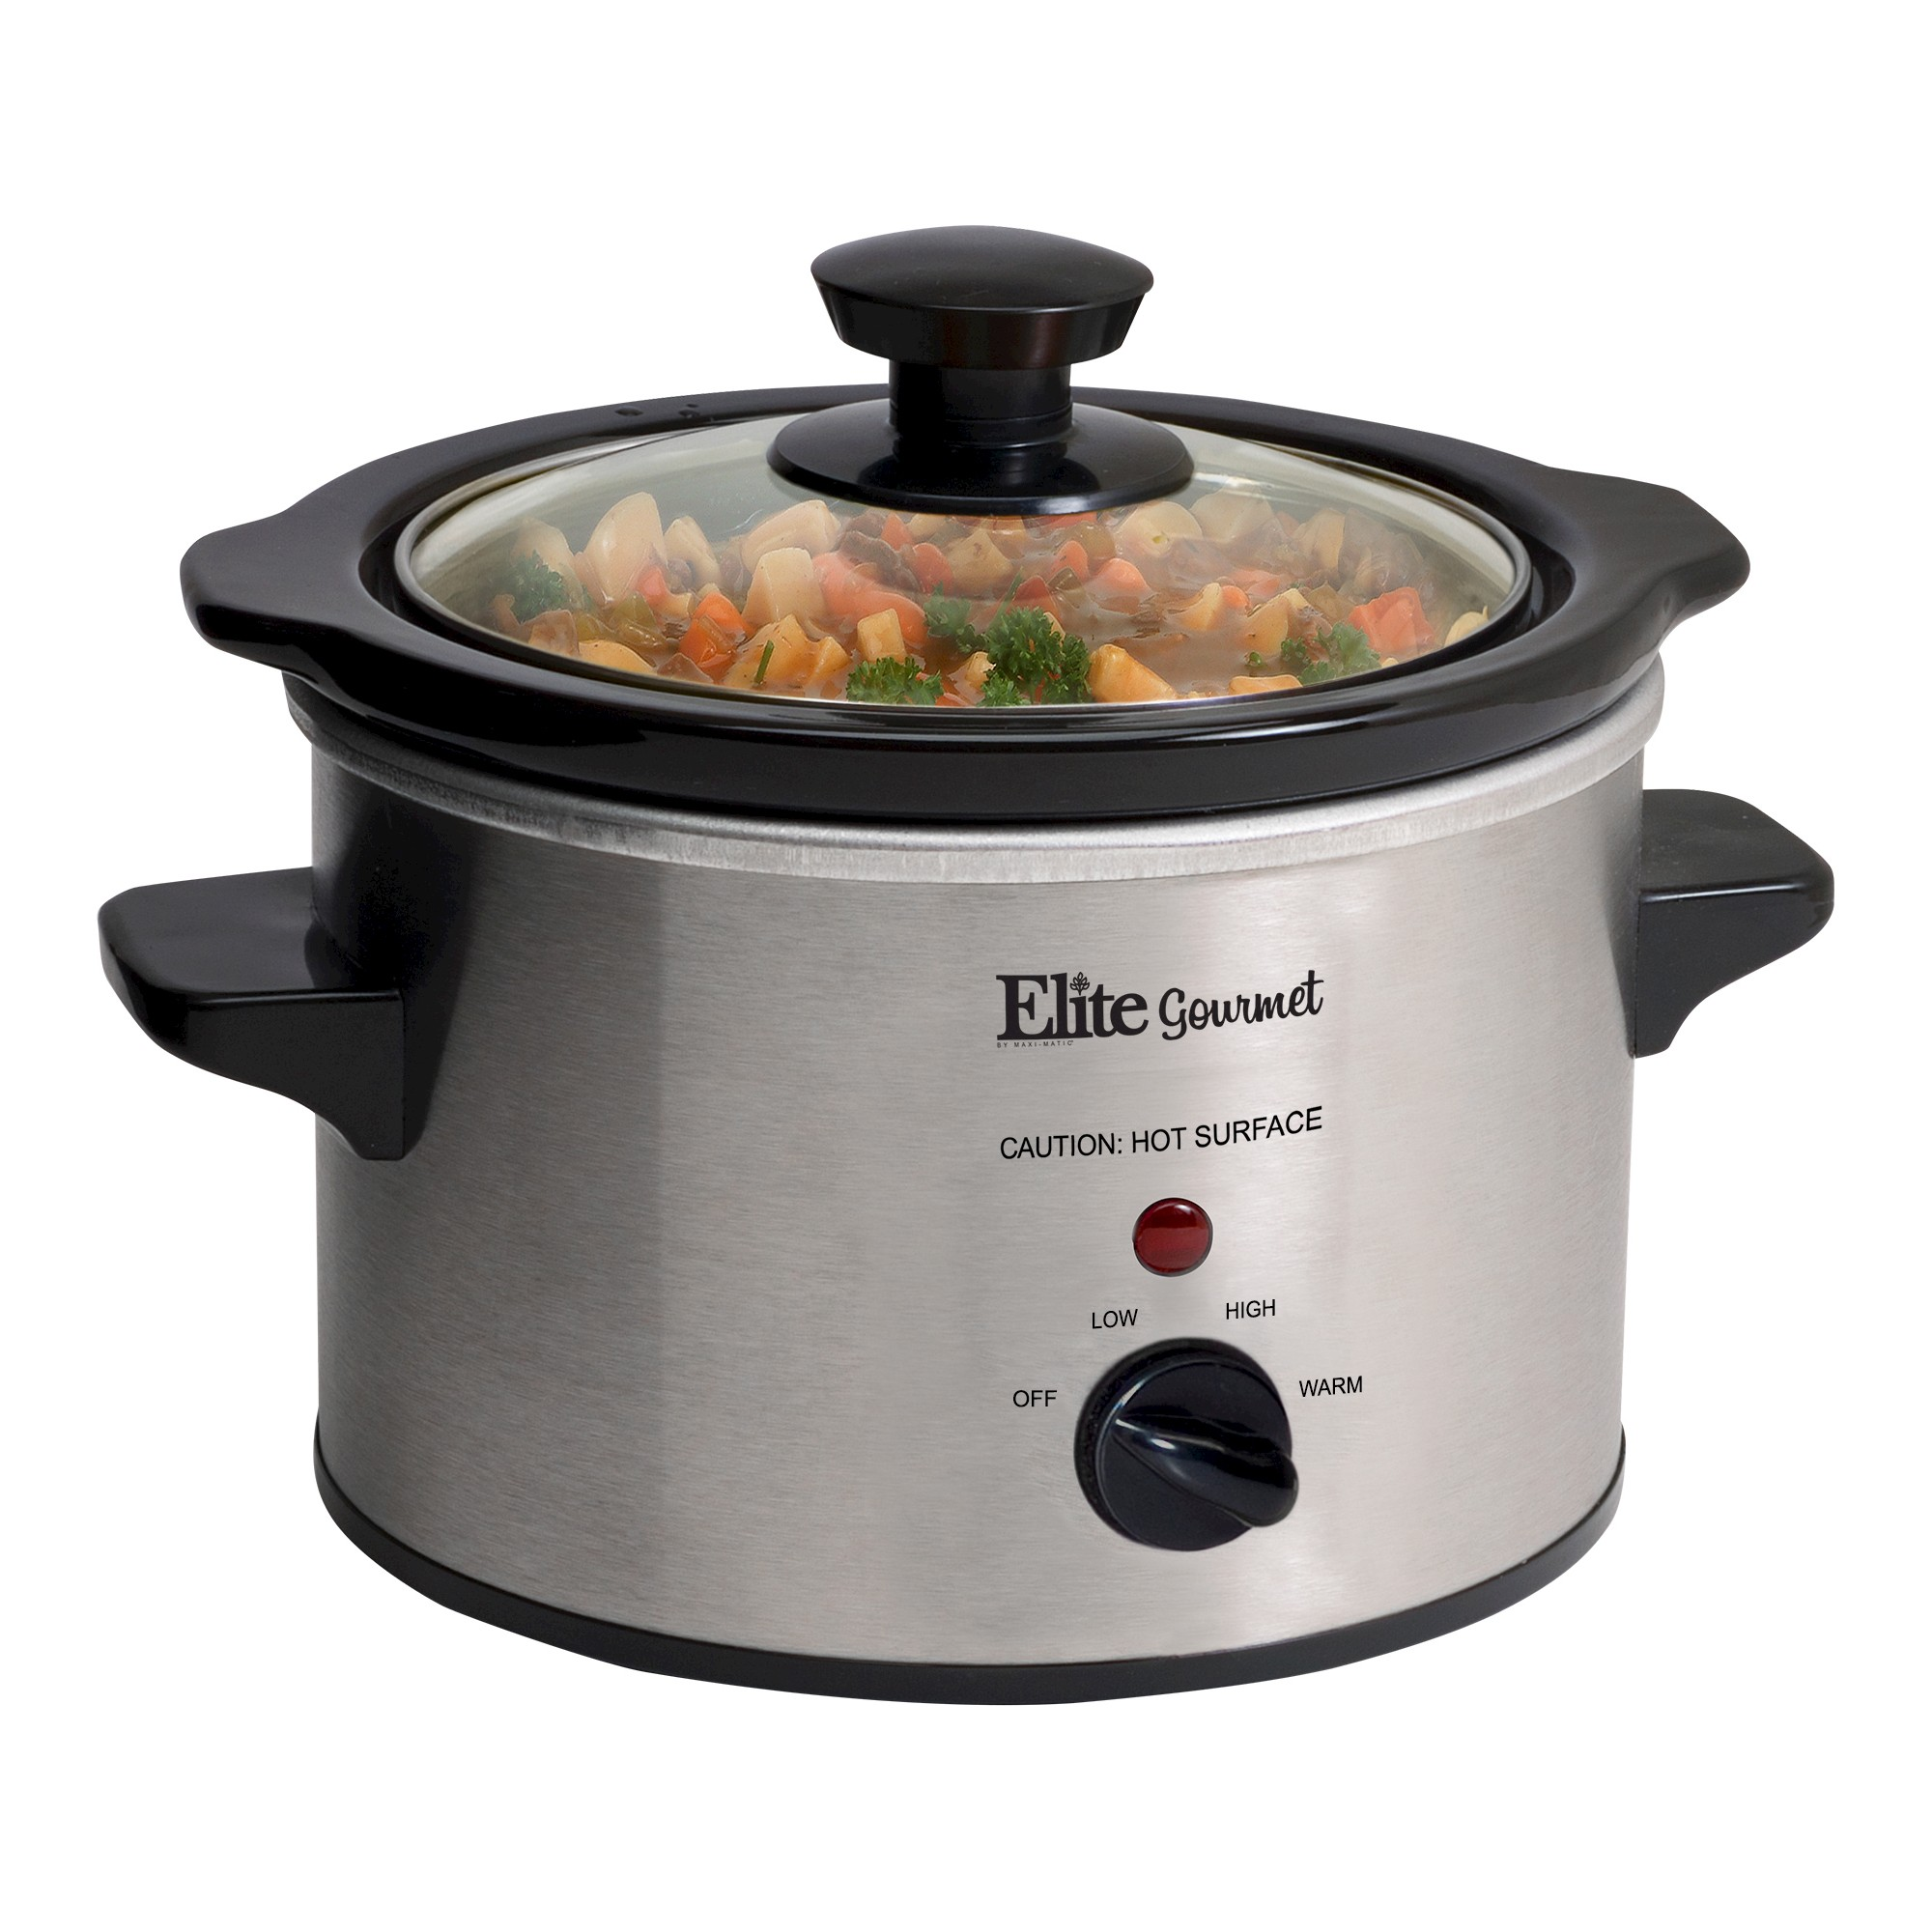 Elite Gourmet Stainless Steel 1 5 Qt Mini Slow Cooker Small